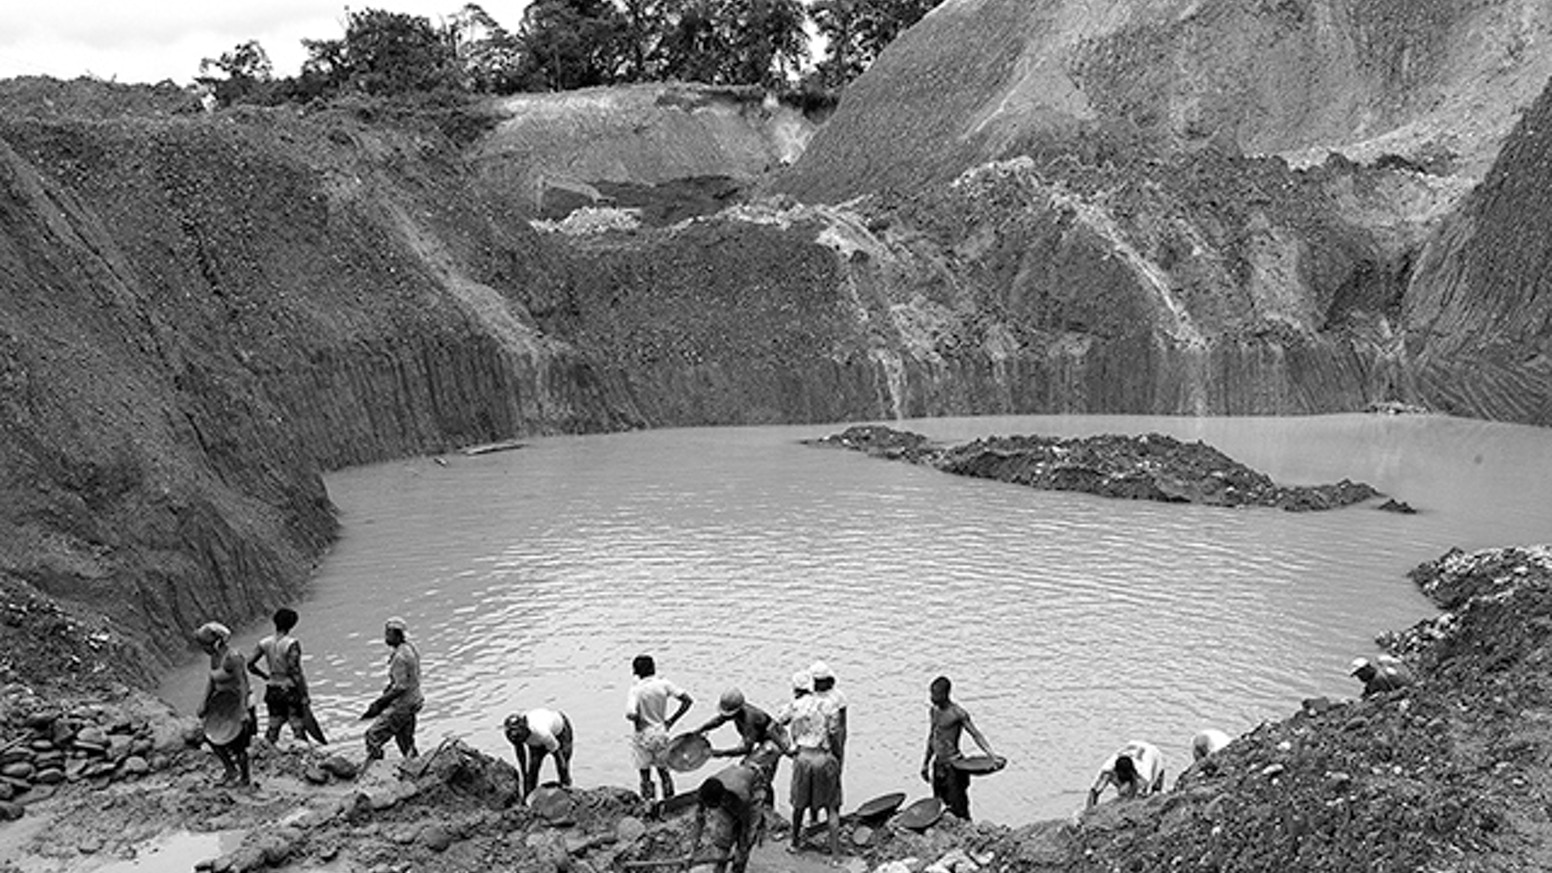 Photography and drawing that examine environmental, social and economic consequences of current mechanized mining practices in El Chocó